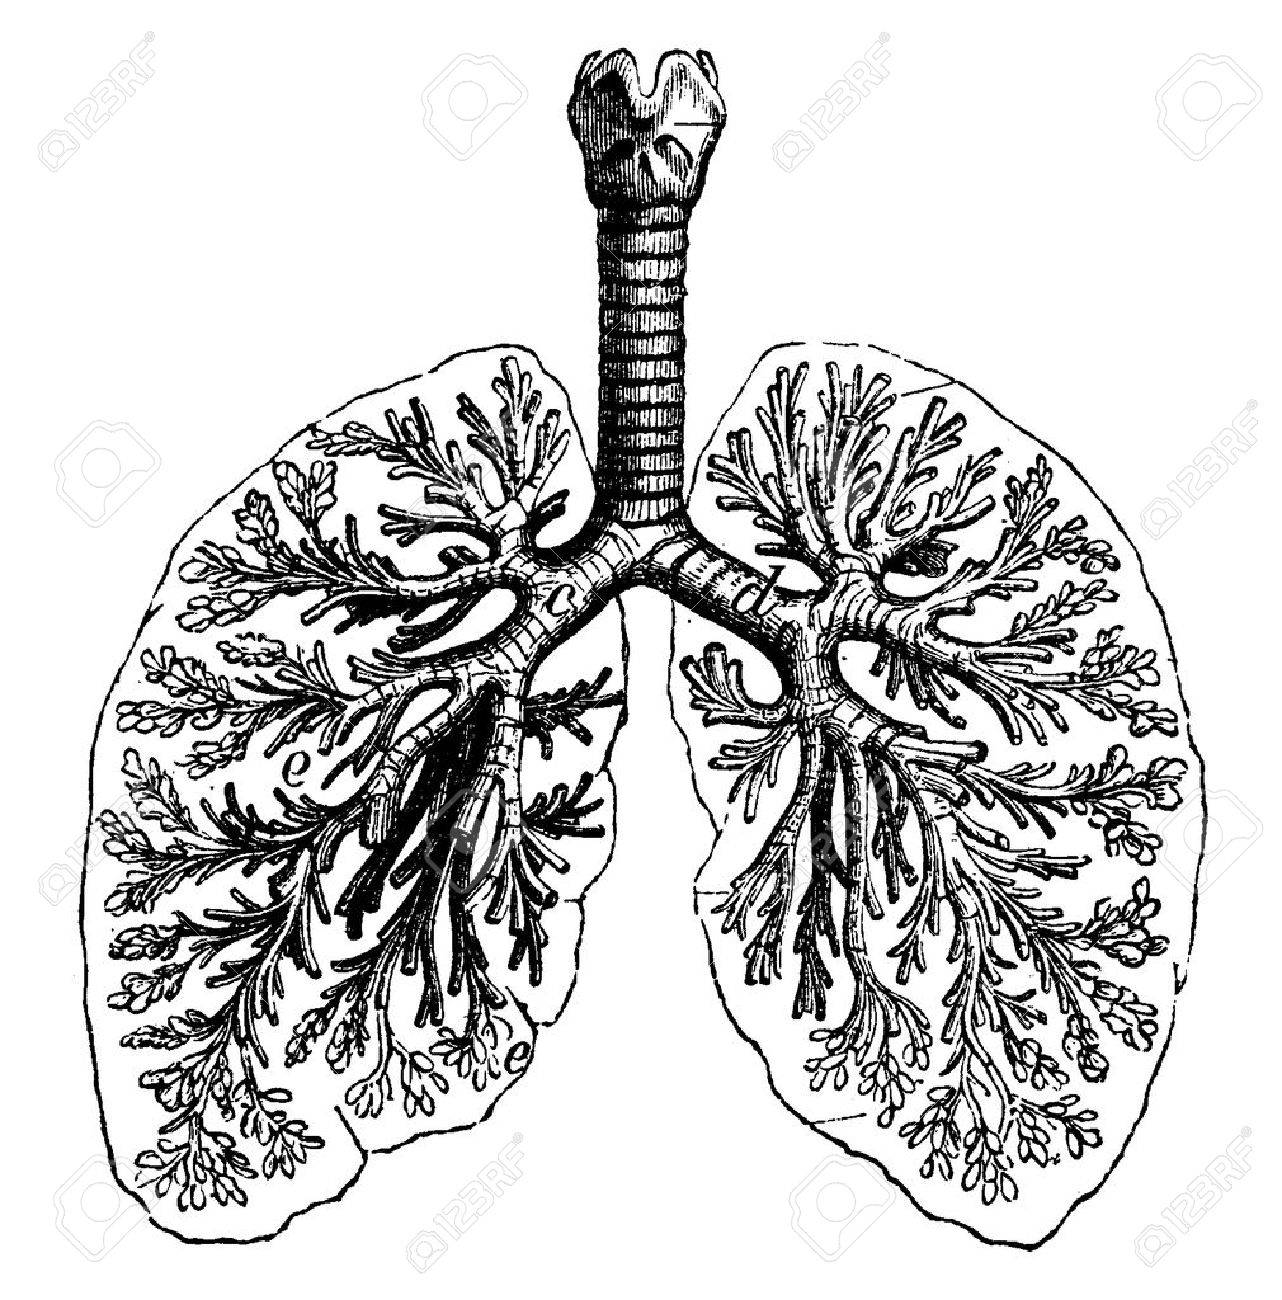 Lungs Drawing At Getdrawings Free For Personal Use Lungs